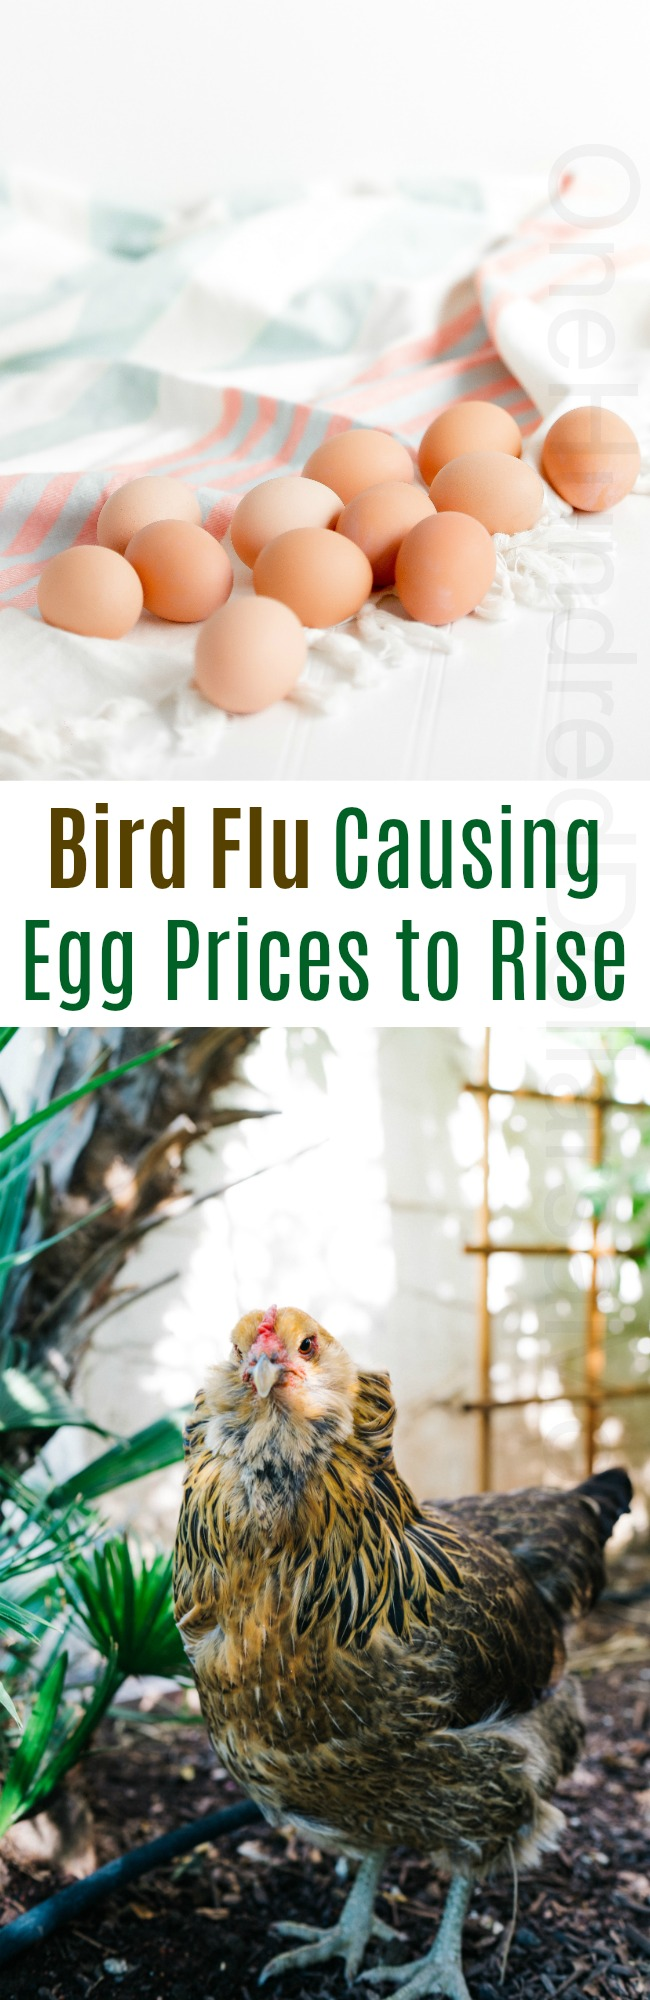 Bird Flu Causing Egg Prices to Rise